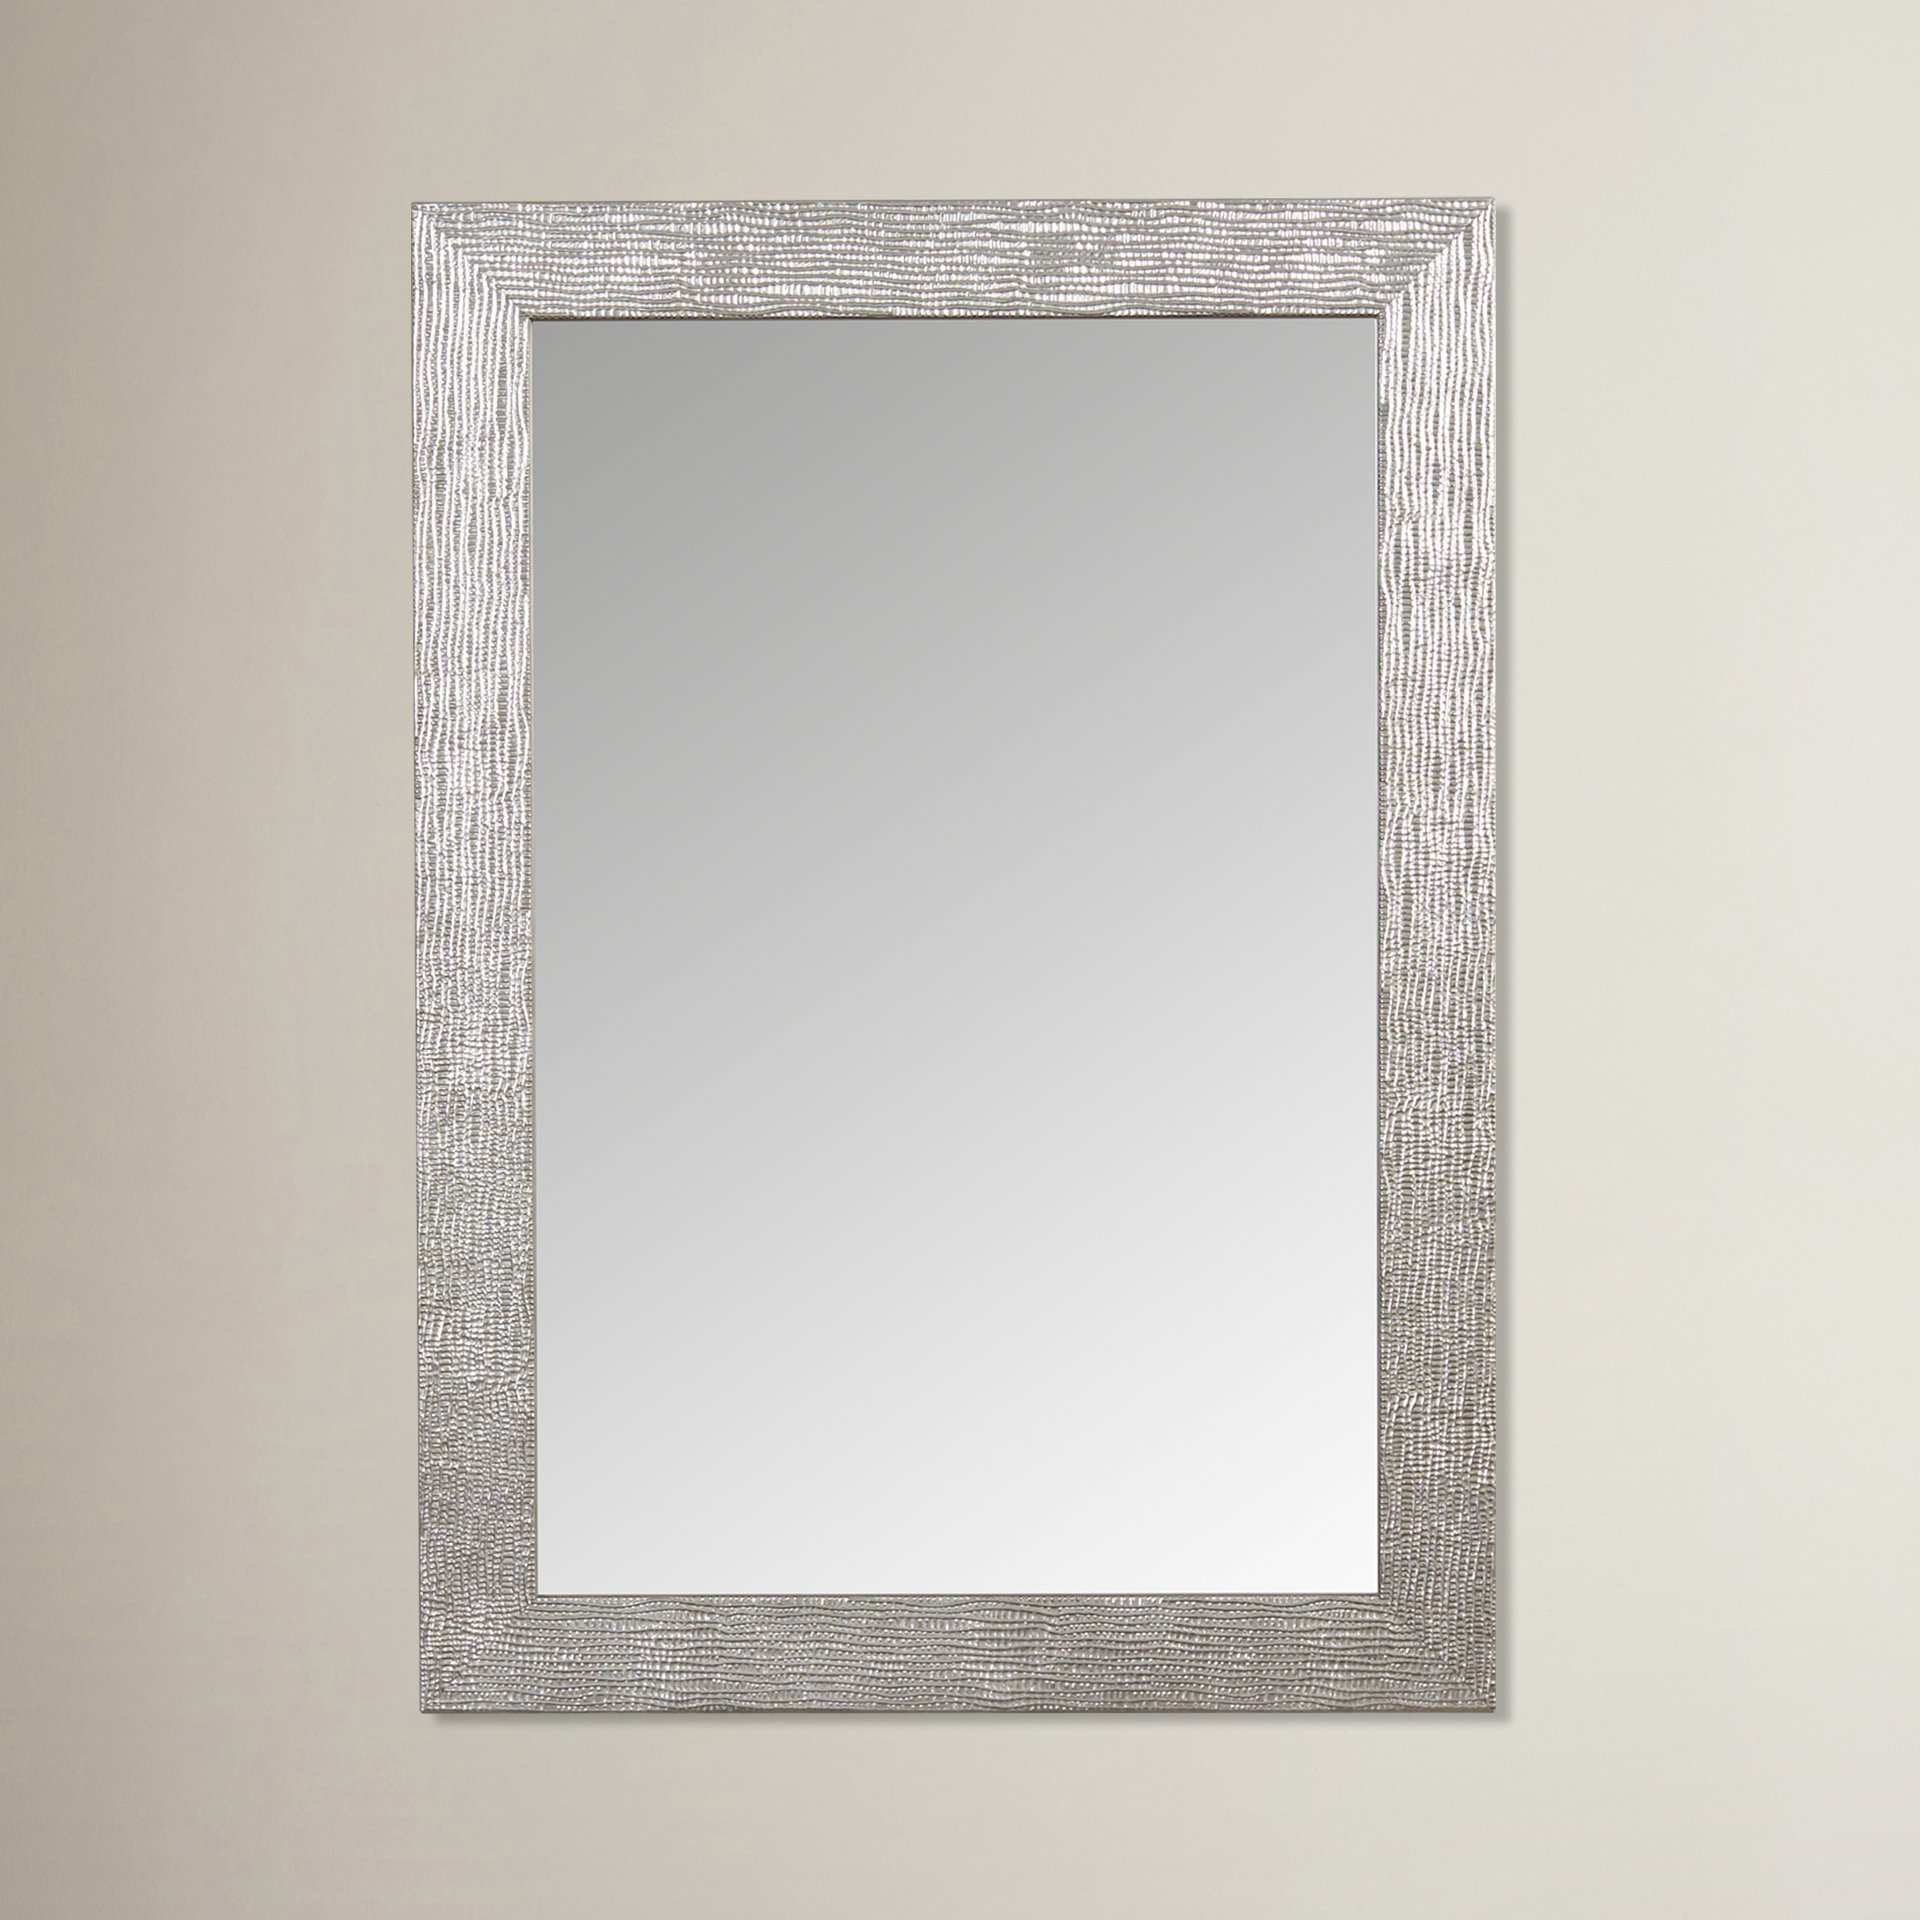 Abdul Accent Mirror With Regard To Abdul Accent Mirrors (View 3 of 20)